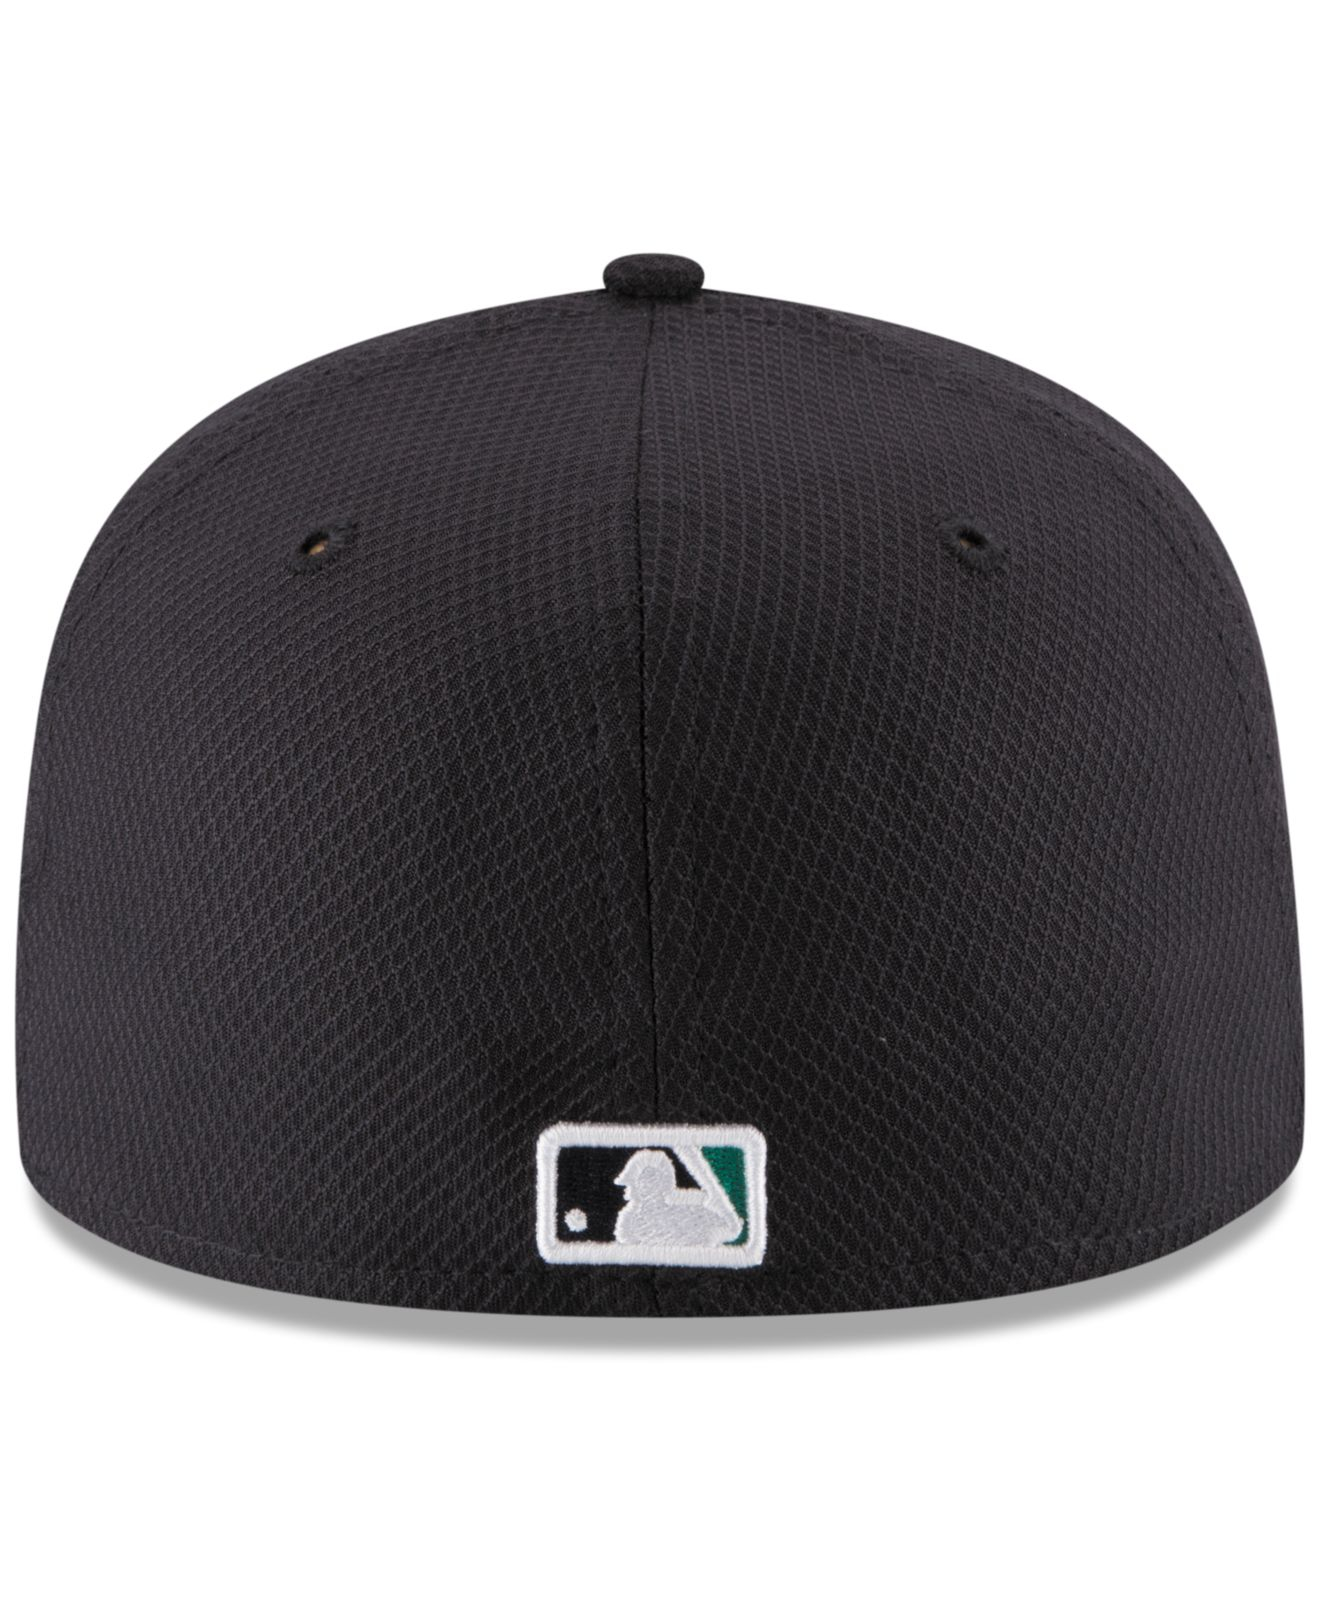 ... low profile 59fifty fitted hat mens seattle mariners new era navy 2017  mlb all 5ac85 821a2  where can i buy lyst ktz seattle mariners diamond era  ... 962ebf1dd080